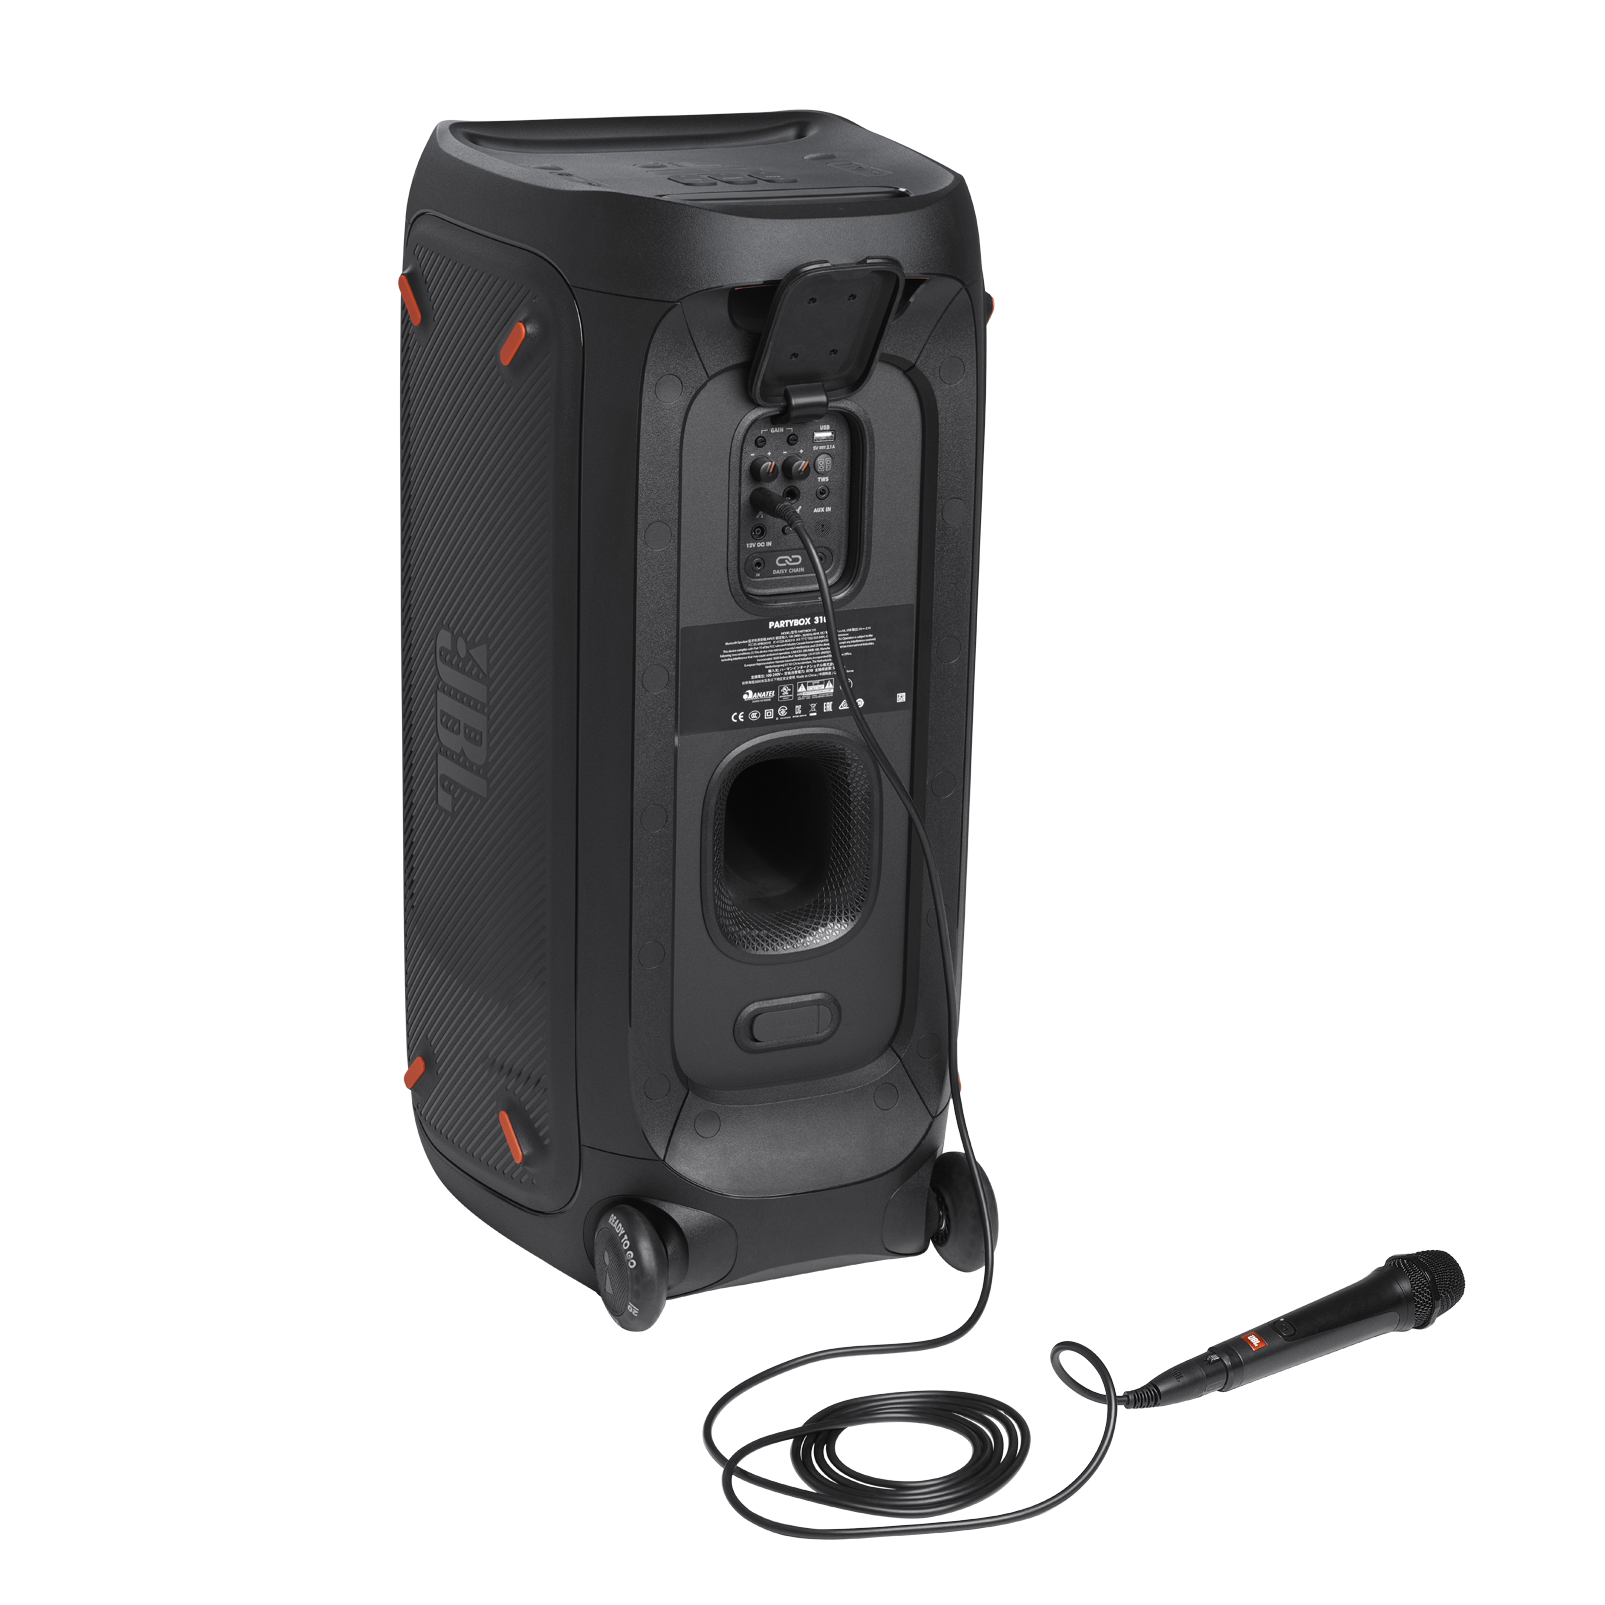 JBL Partybox 310 + Mic - Black - Portable party speaker with 240W powerful sound, built-in lightshow and wired mic - Detailshot 1